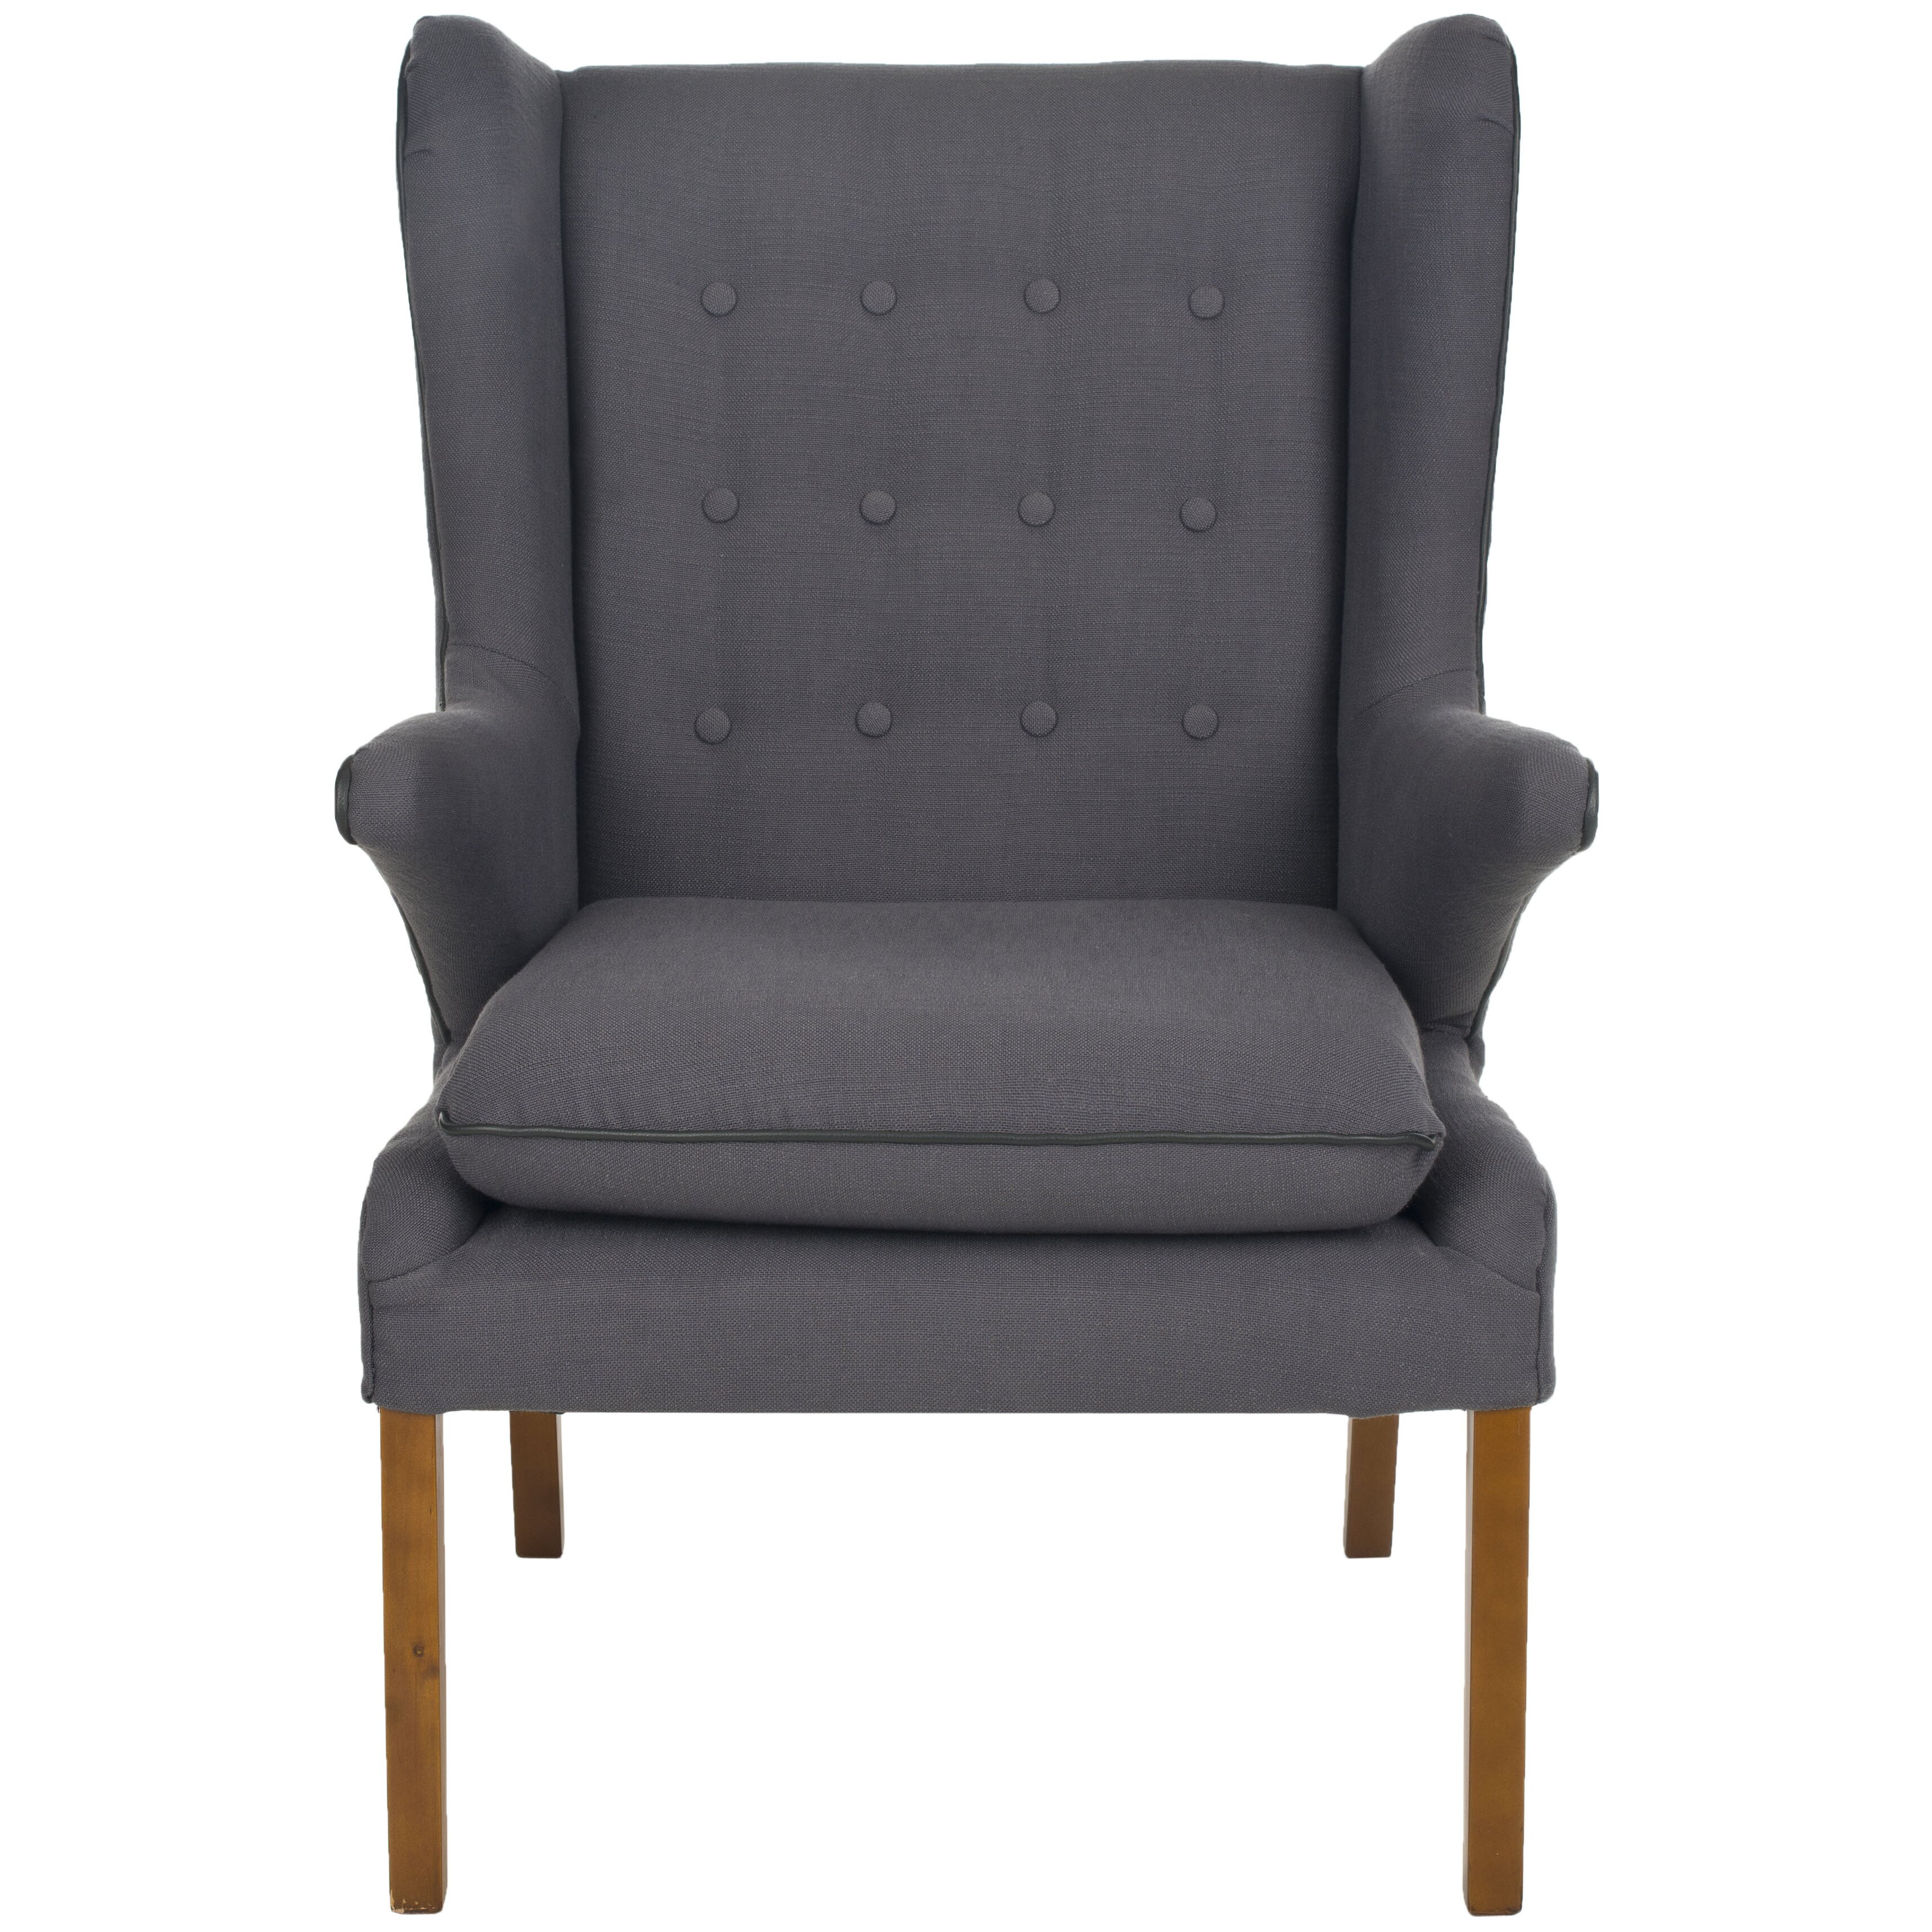 Masculine Chair Covers Safavieh Gomer Wing Chair